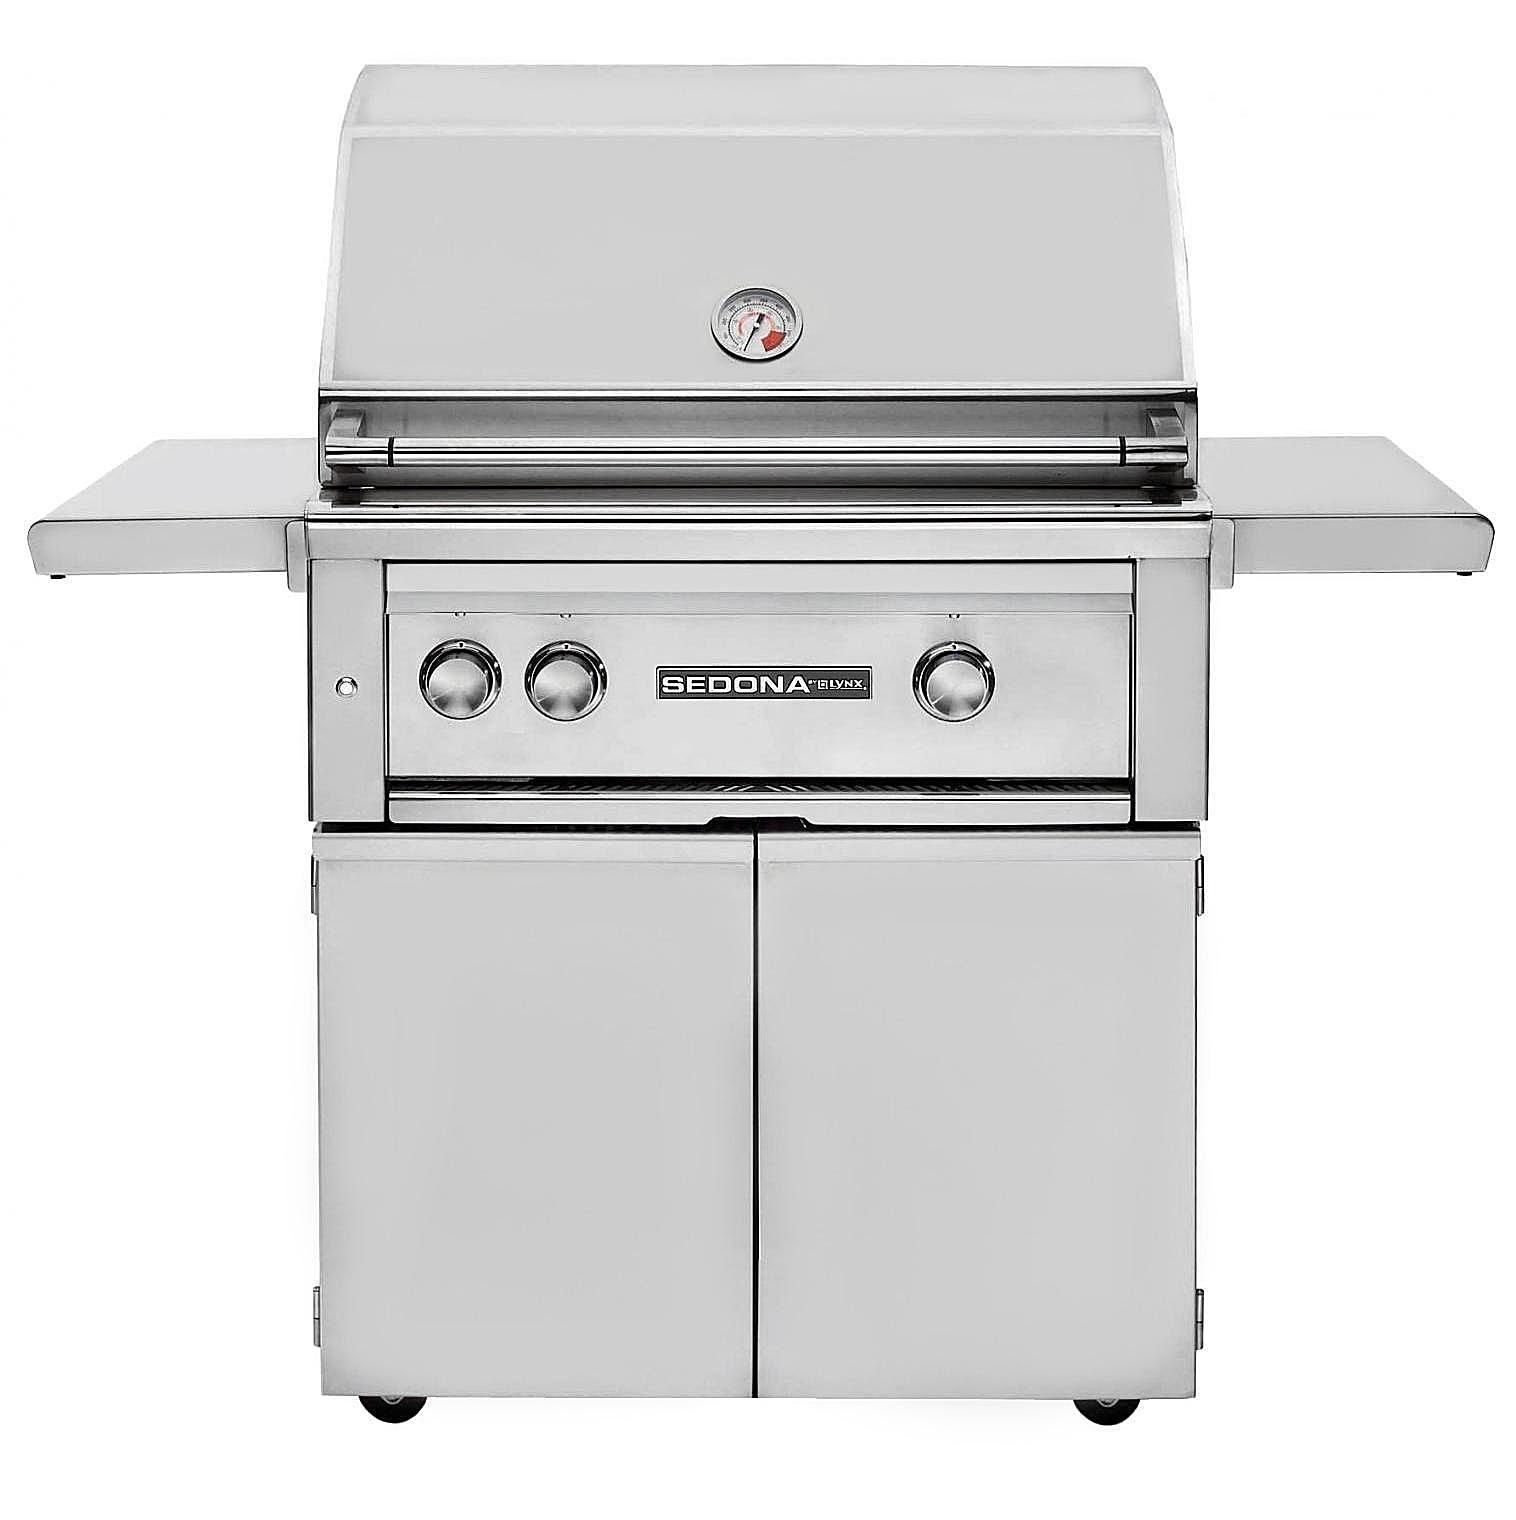 Sedona By Lynx 36 Inch Gas Grill Review